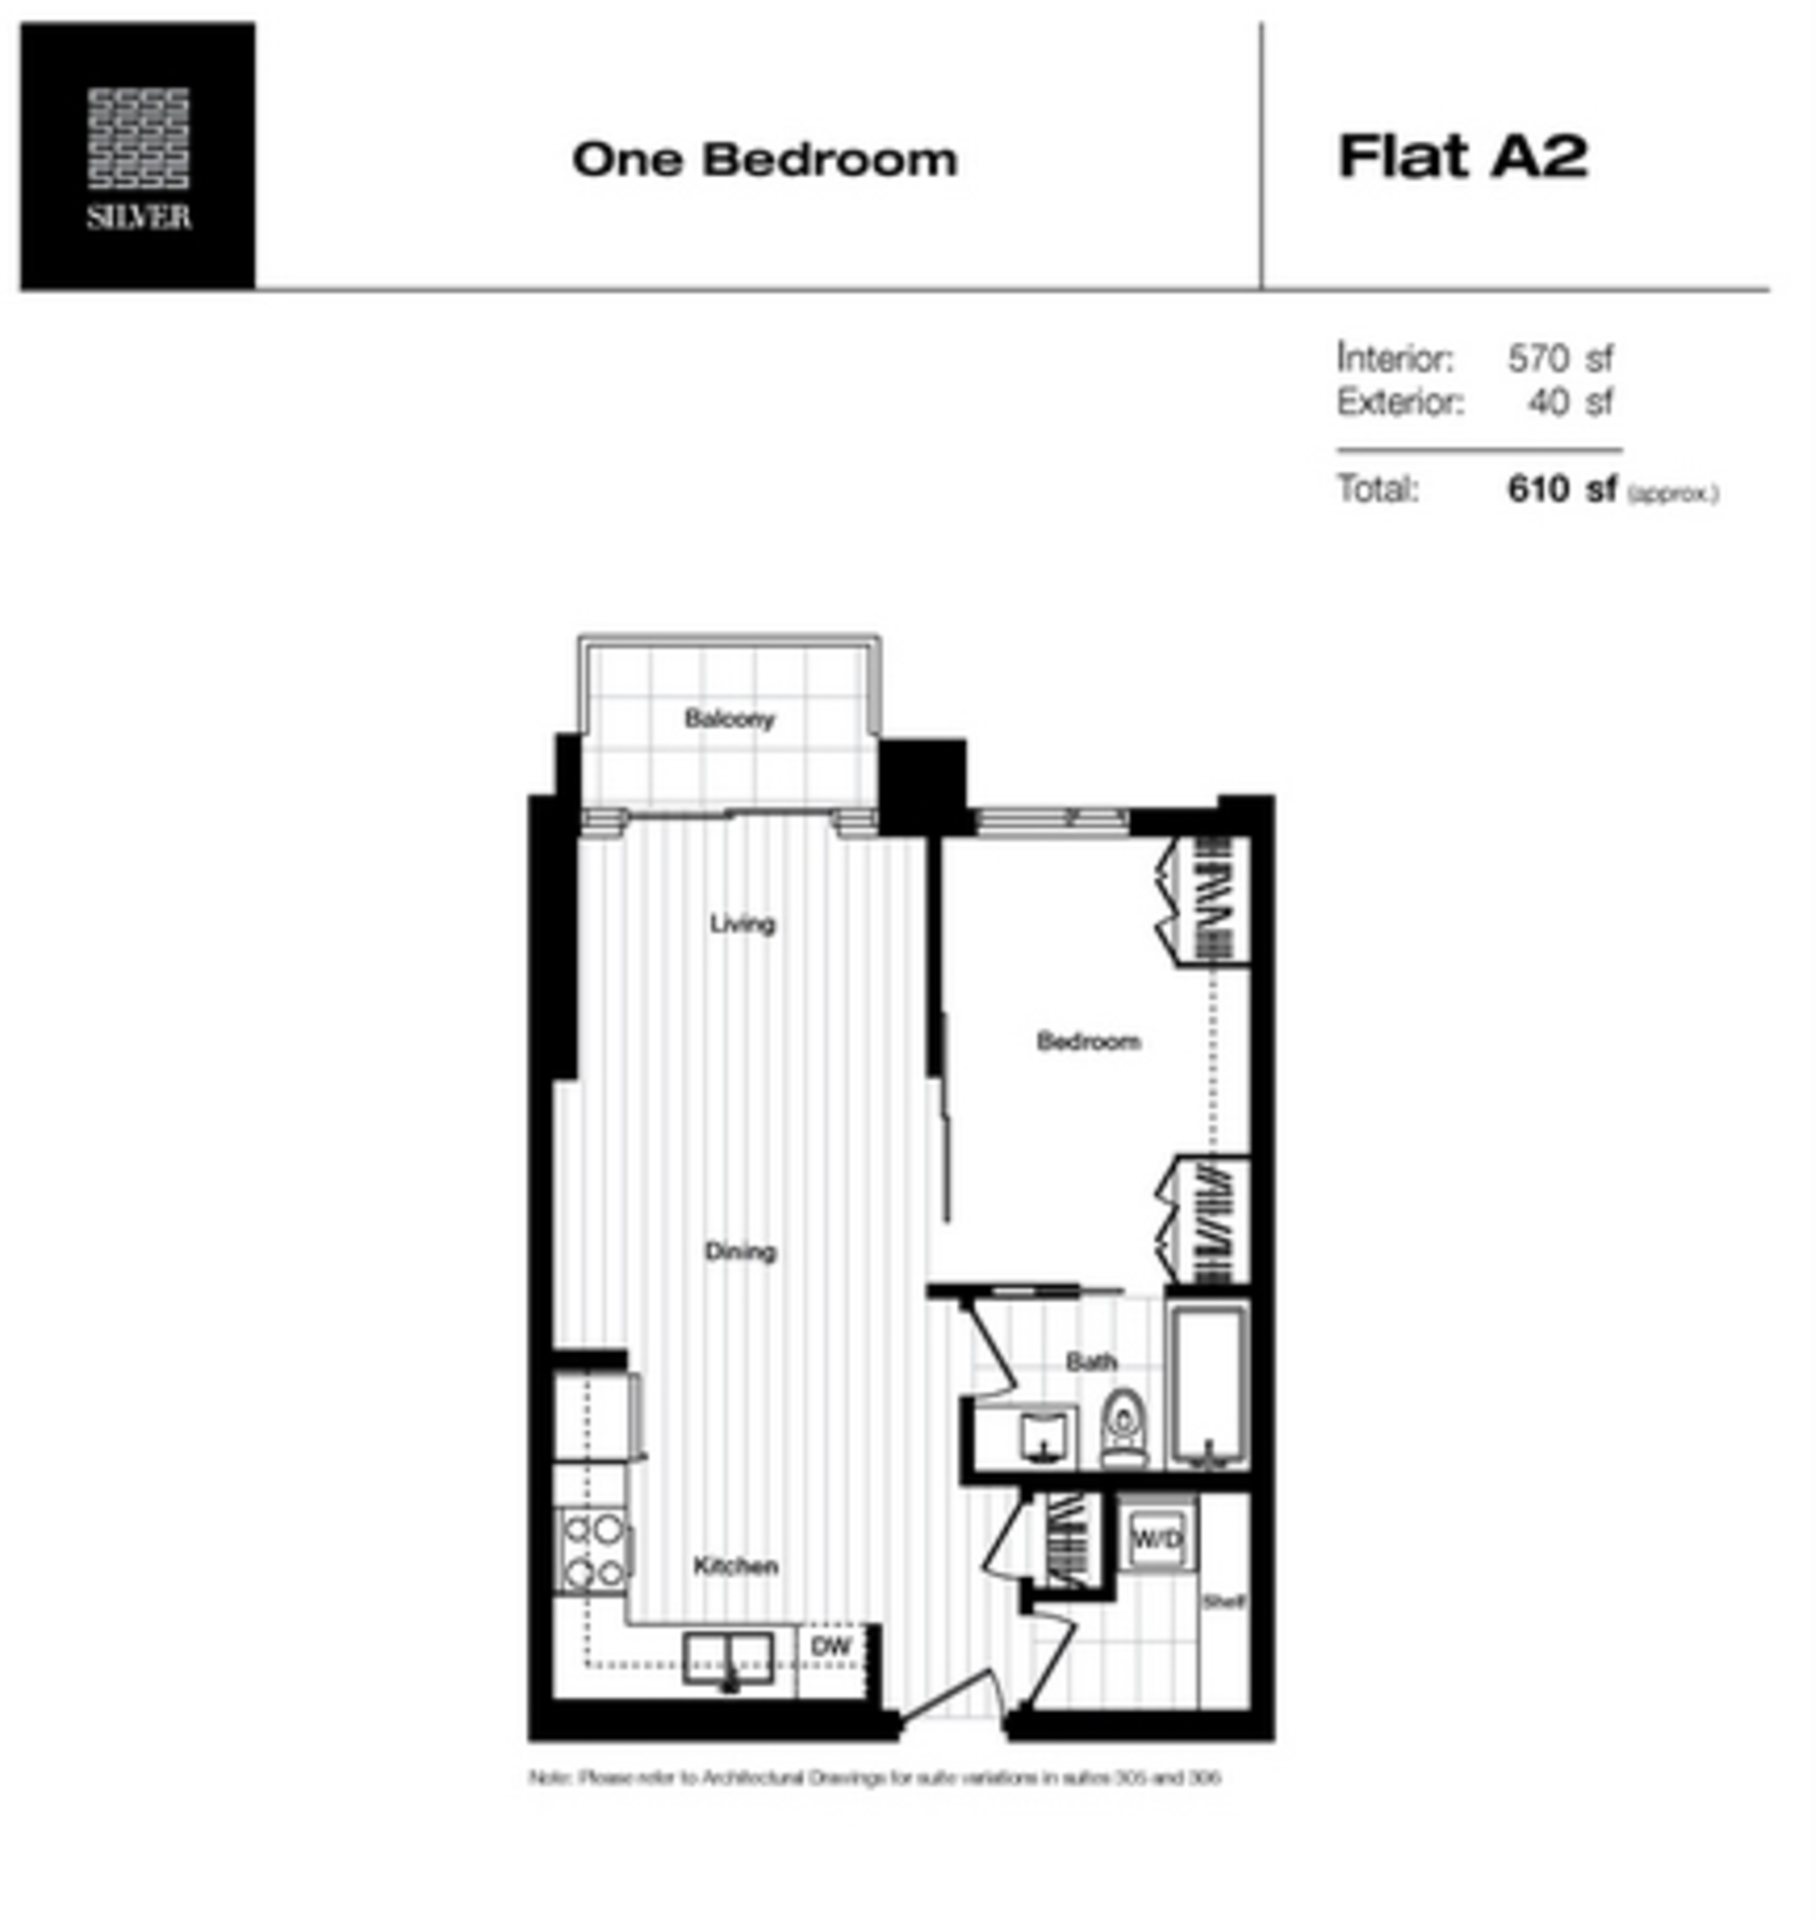 image-262120571-17.jpg at 305 - 6333 Silver Avenue, Metrotown, Burnaby South